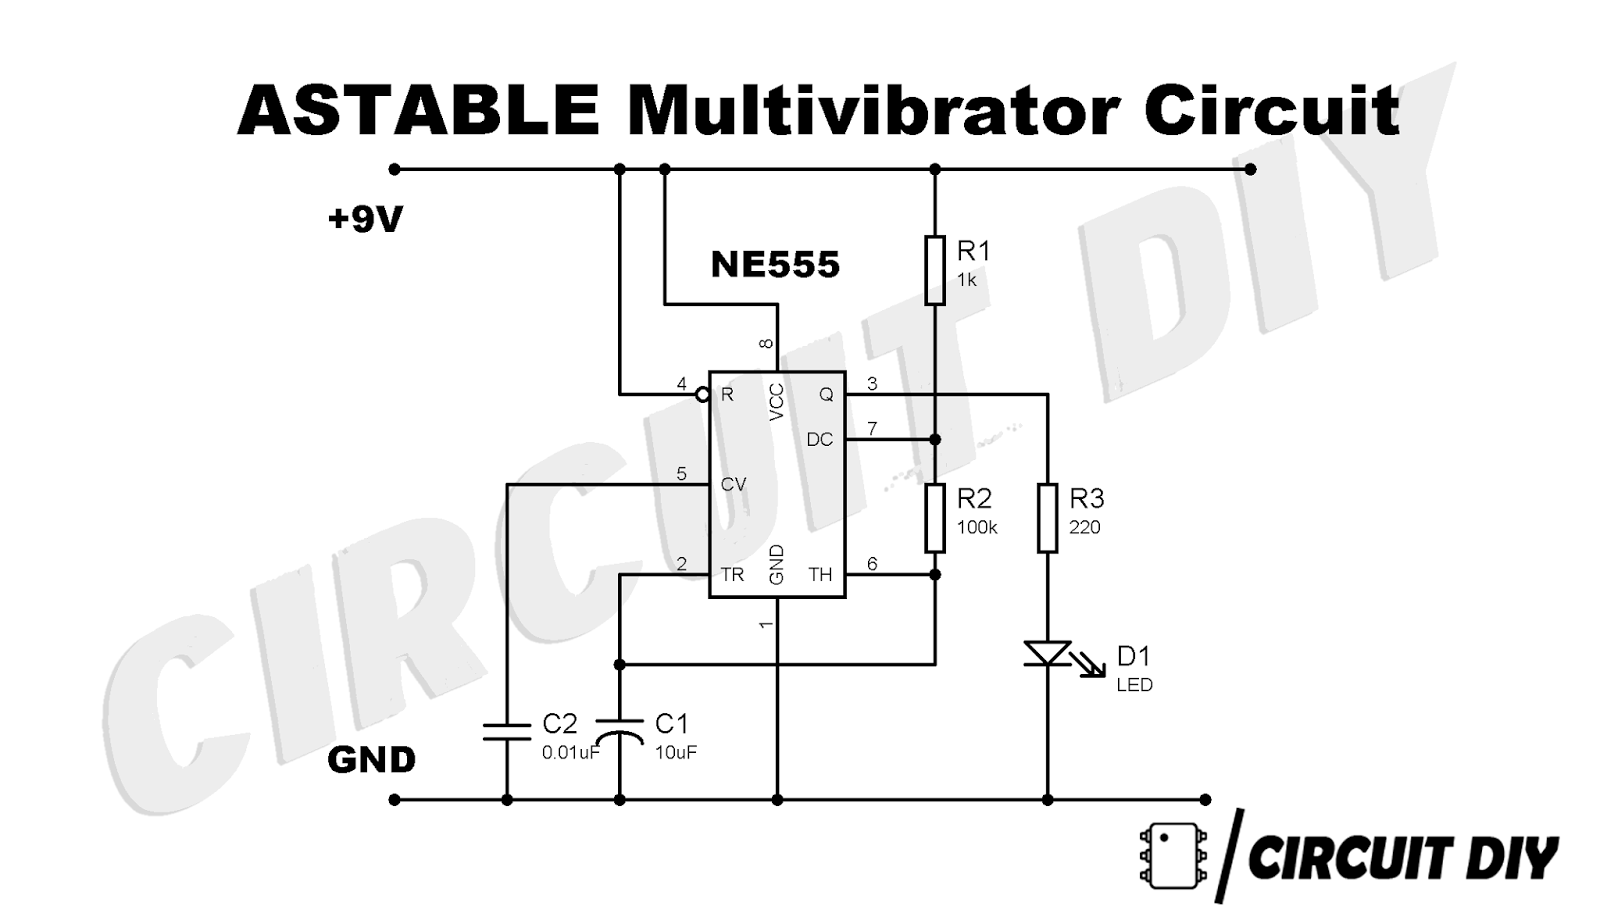 astable multivibrator using 555 timer diy step by step how to